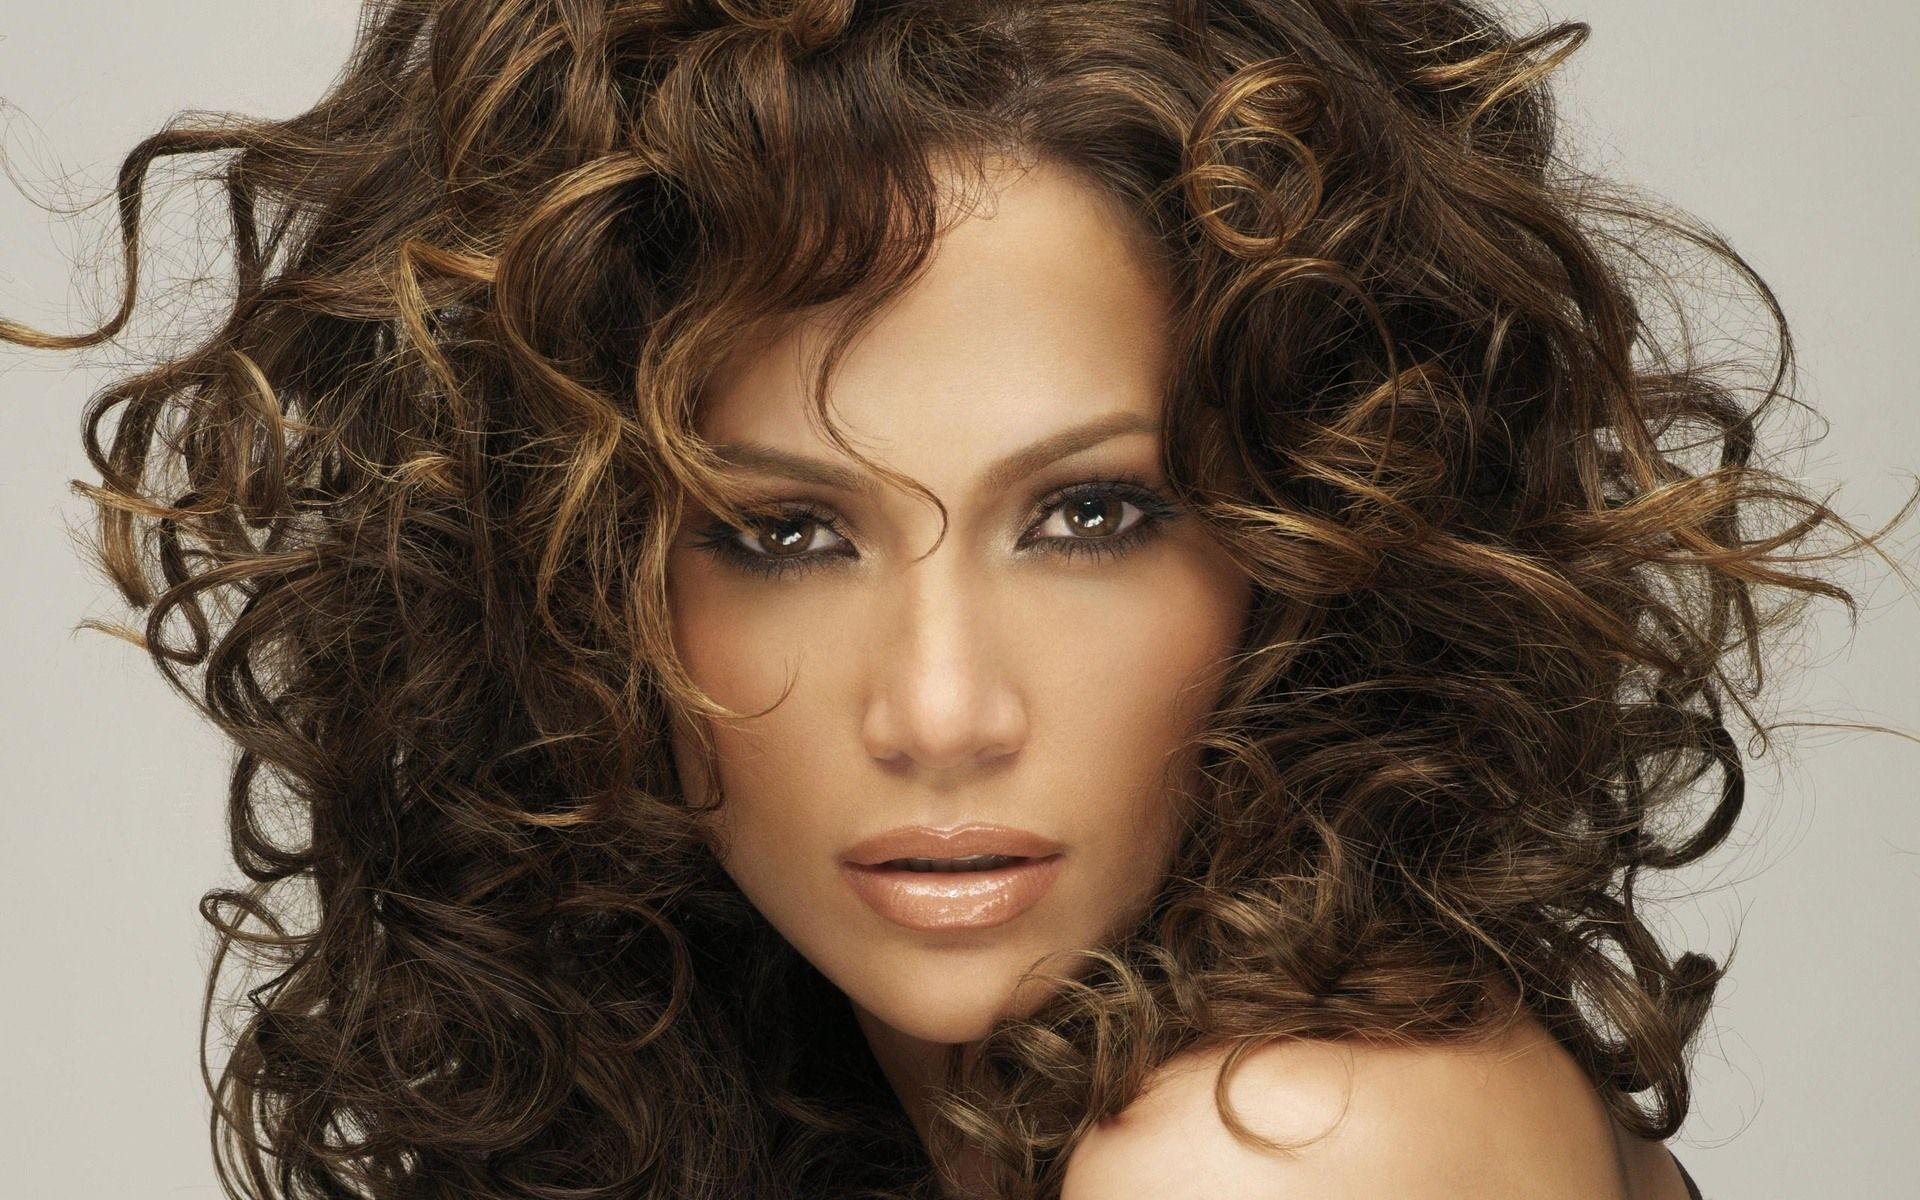 1920x1200 Jennifer Lopez Big Hair, Beautiful Face widescreen wallpaper | Wide ...